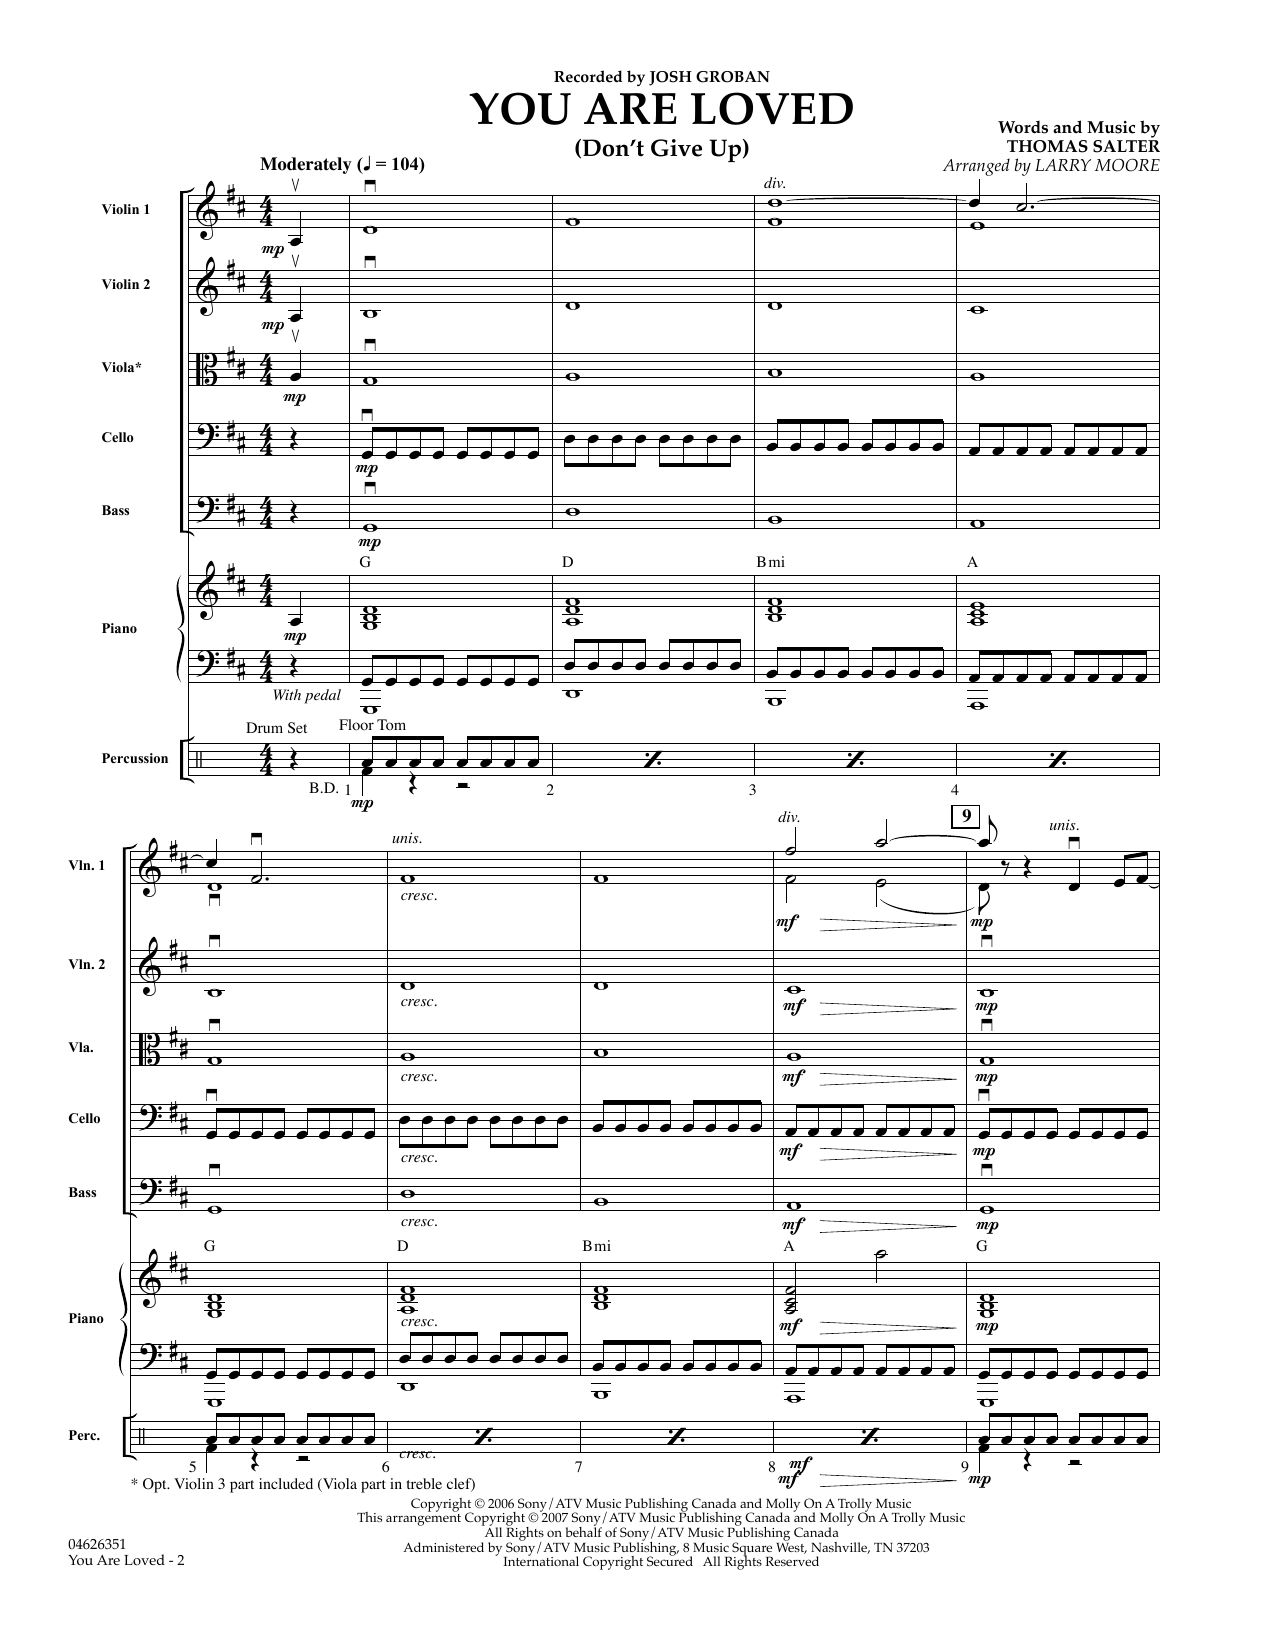 You Are Loved (Don't Give Up) (COMPLETE) sheet music for orchestra by Larry Moore, Josh Groban and Thomas Salter. Score Image Preview.